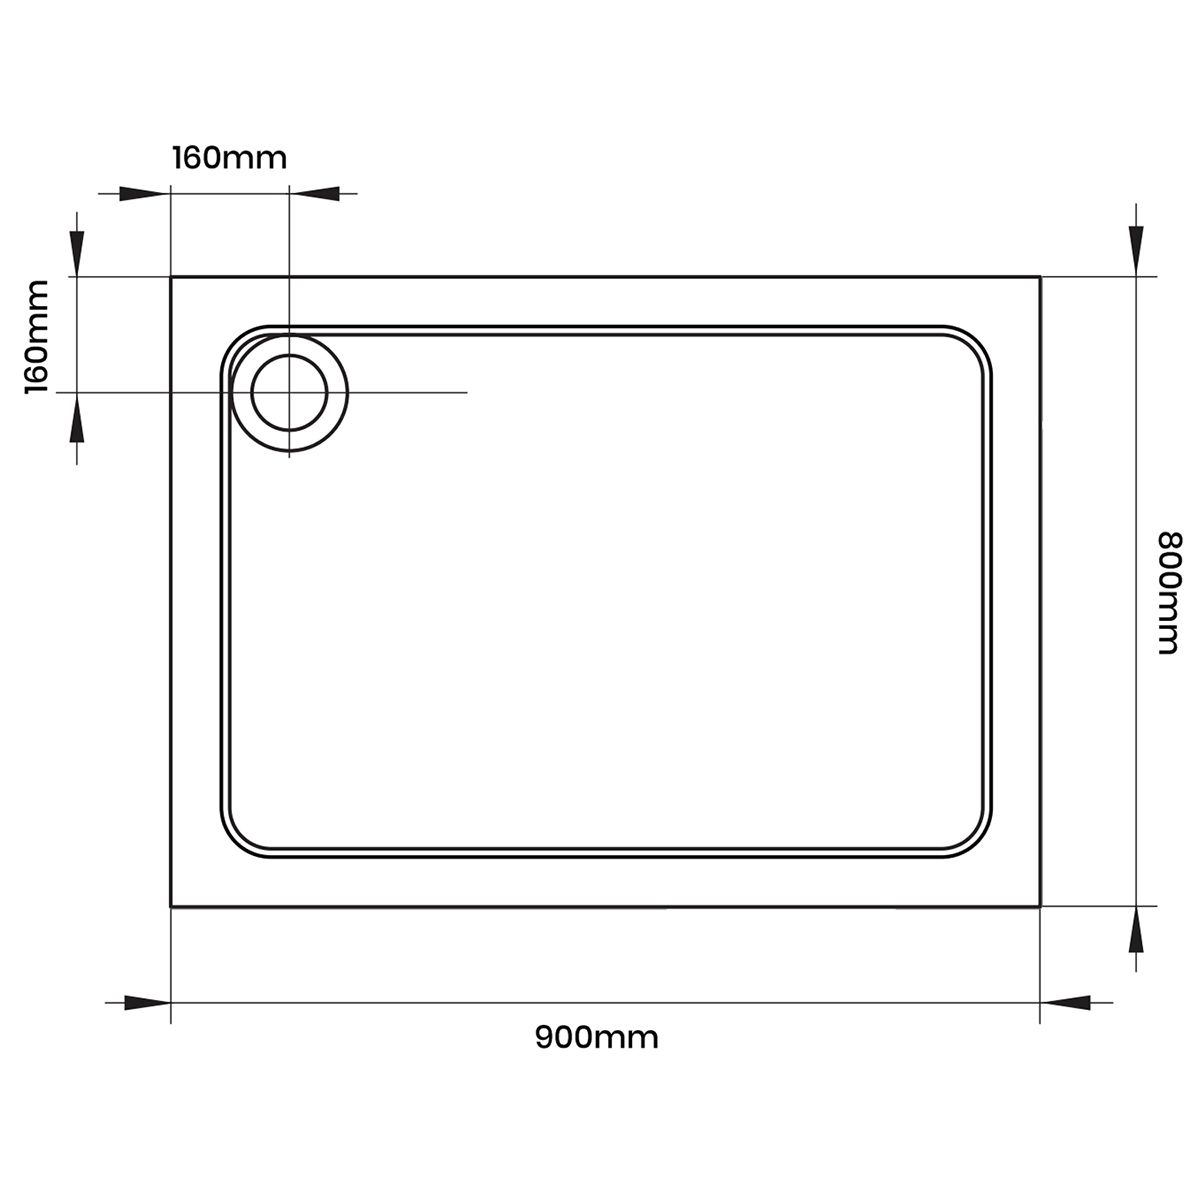 Aquadart Rectangular 900 x 800 Shower Tray